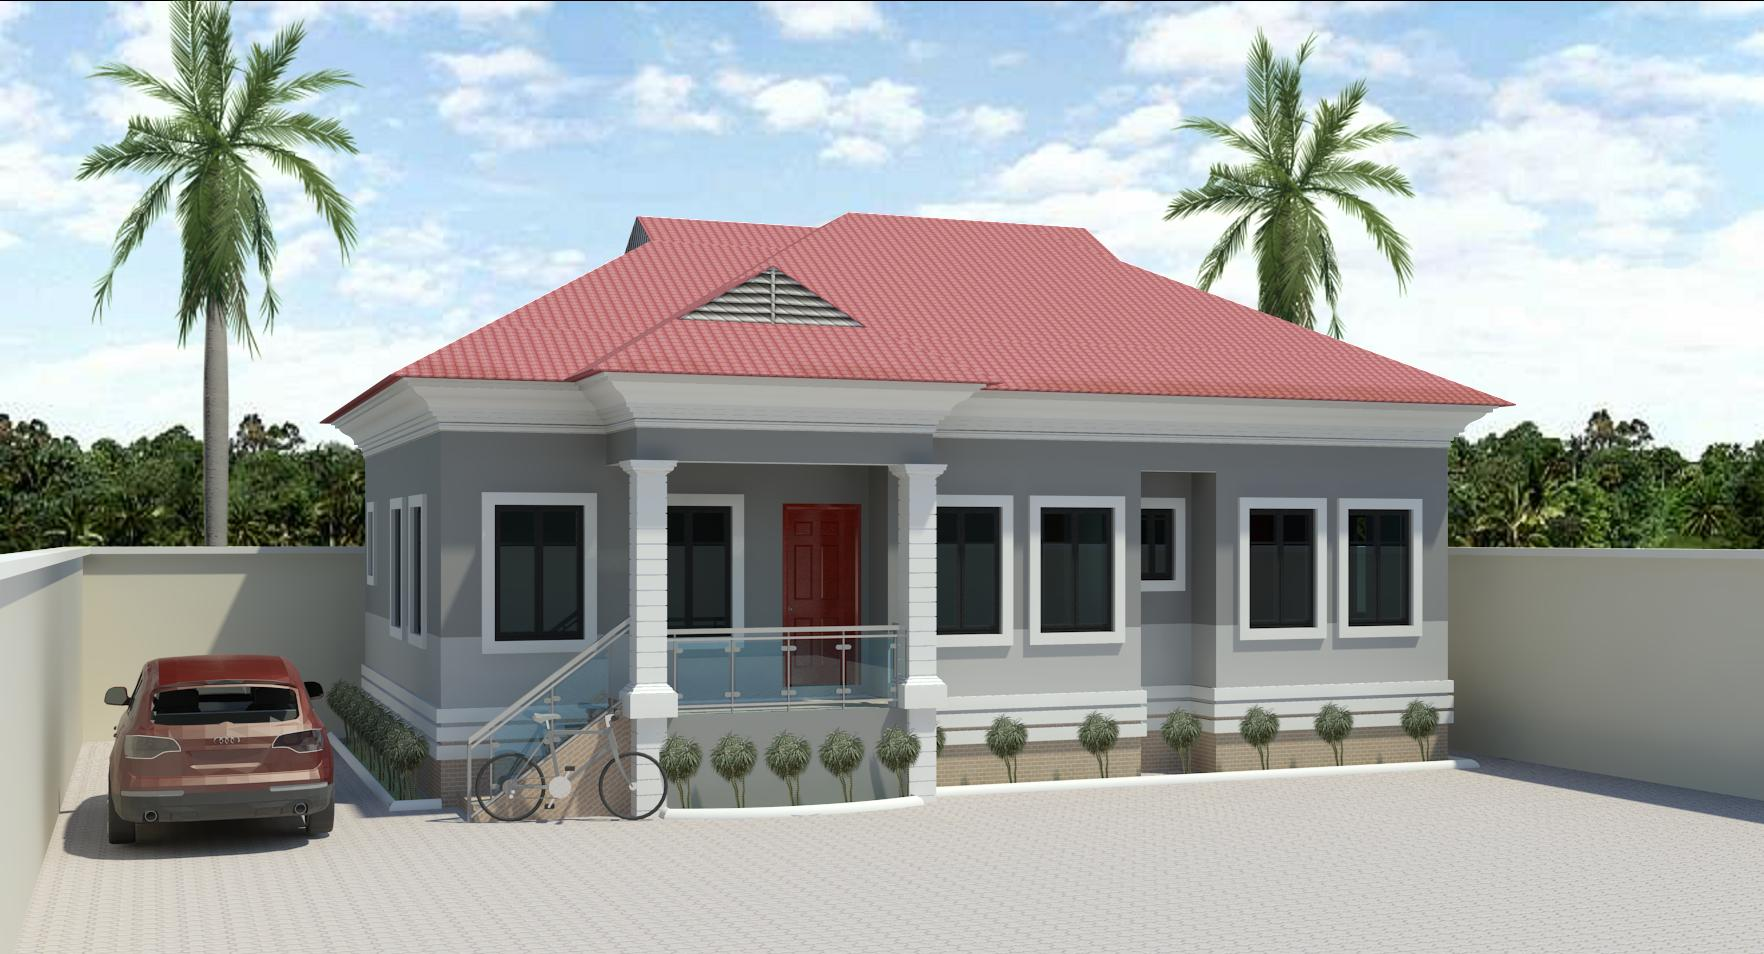 3bedroom bungalow designs in nigeria joy studio design for 3 bedroom house plans and designs